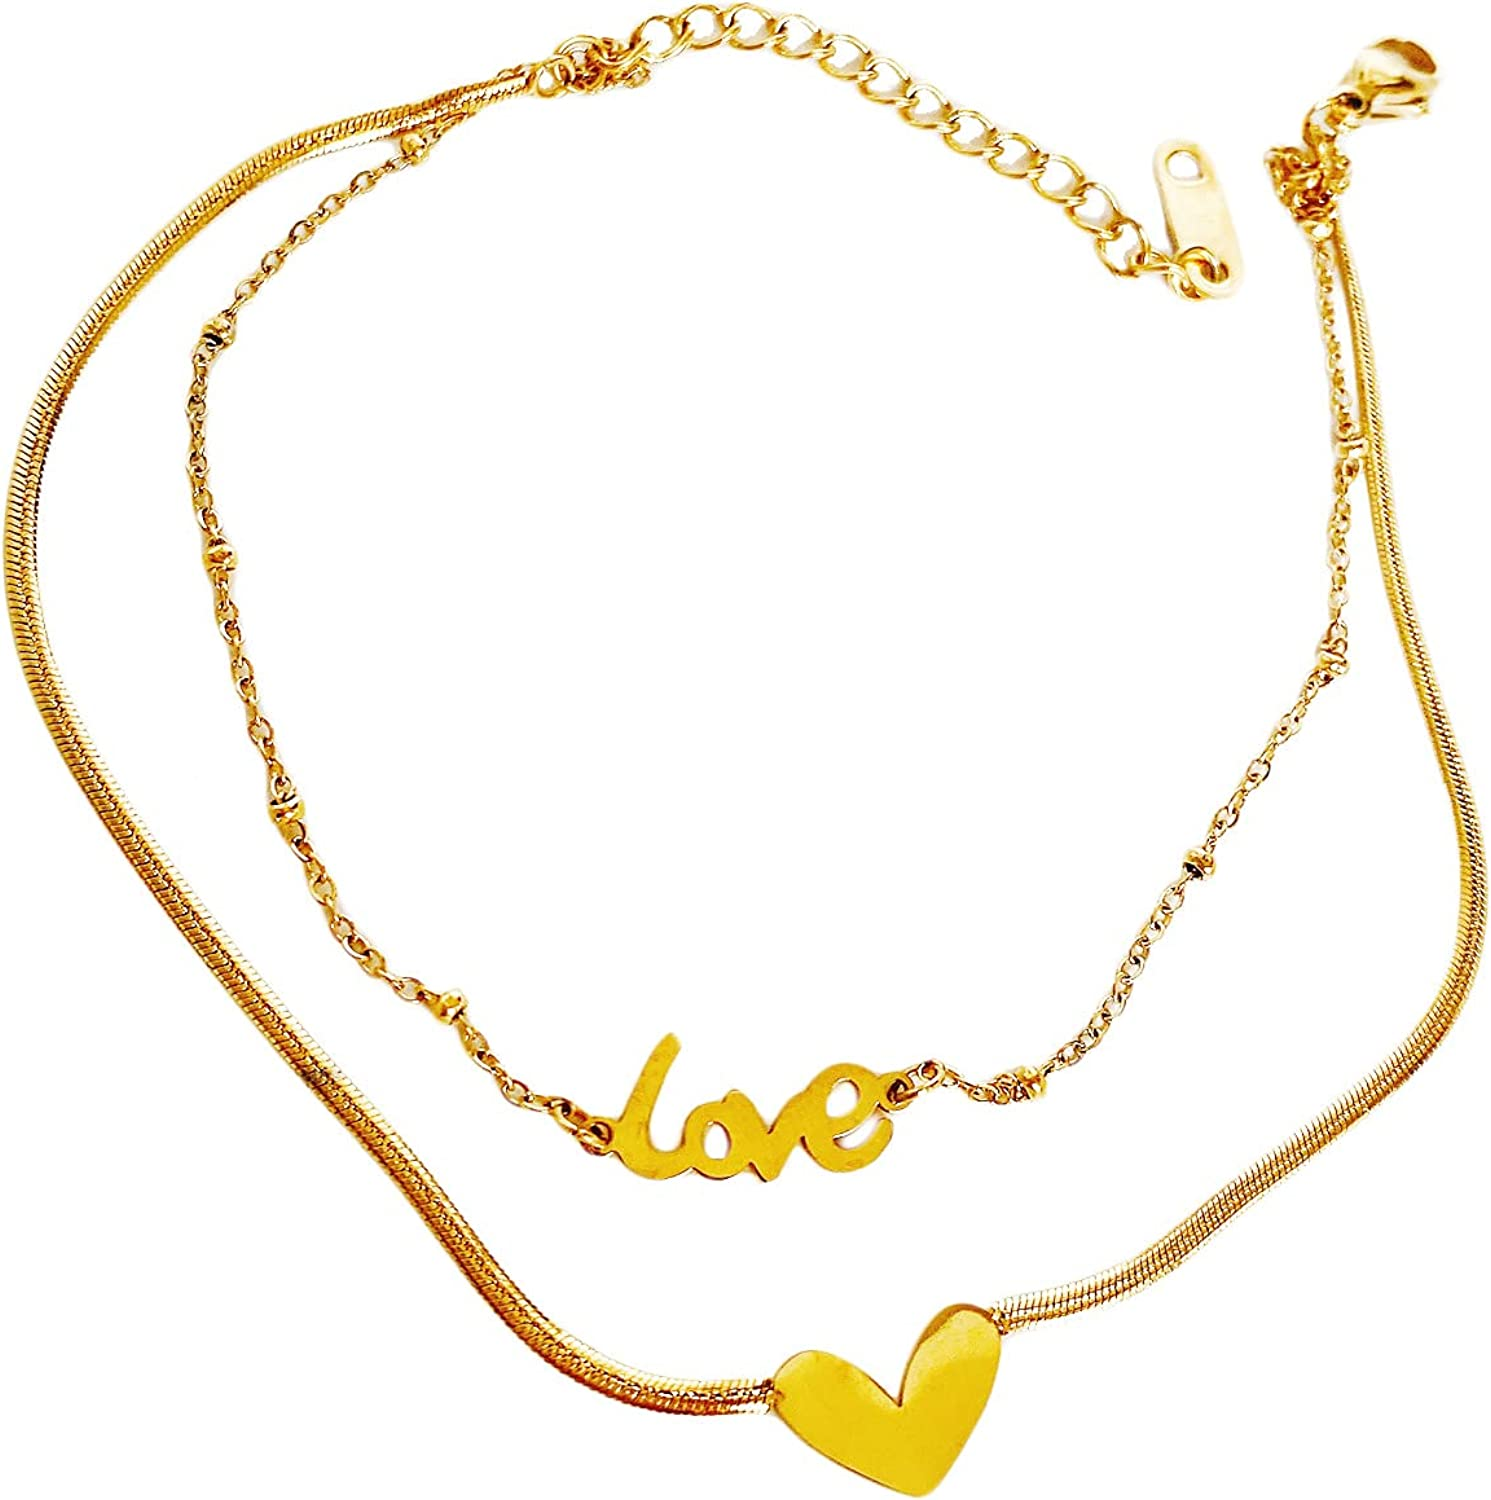 AININI Women's Layered Ankle Bracelet 14k Gold Plated Anklets with LOVE Heart Summer Beach Bracelets Ankle Jewelry Gifts for Teen Girls, Women,Her